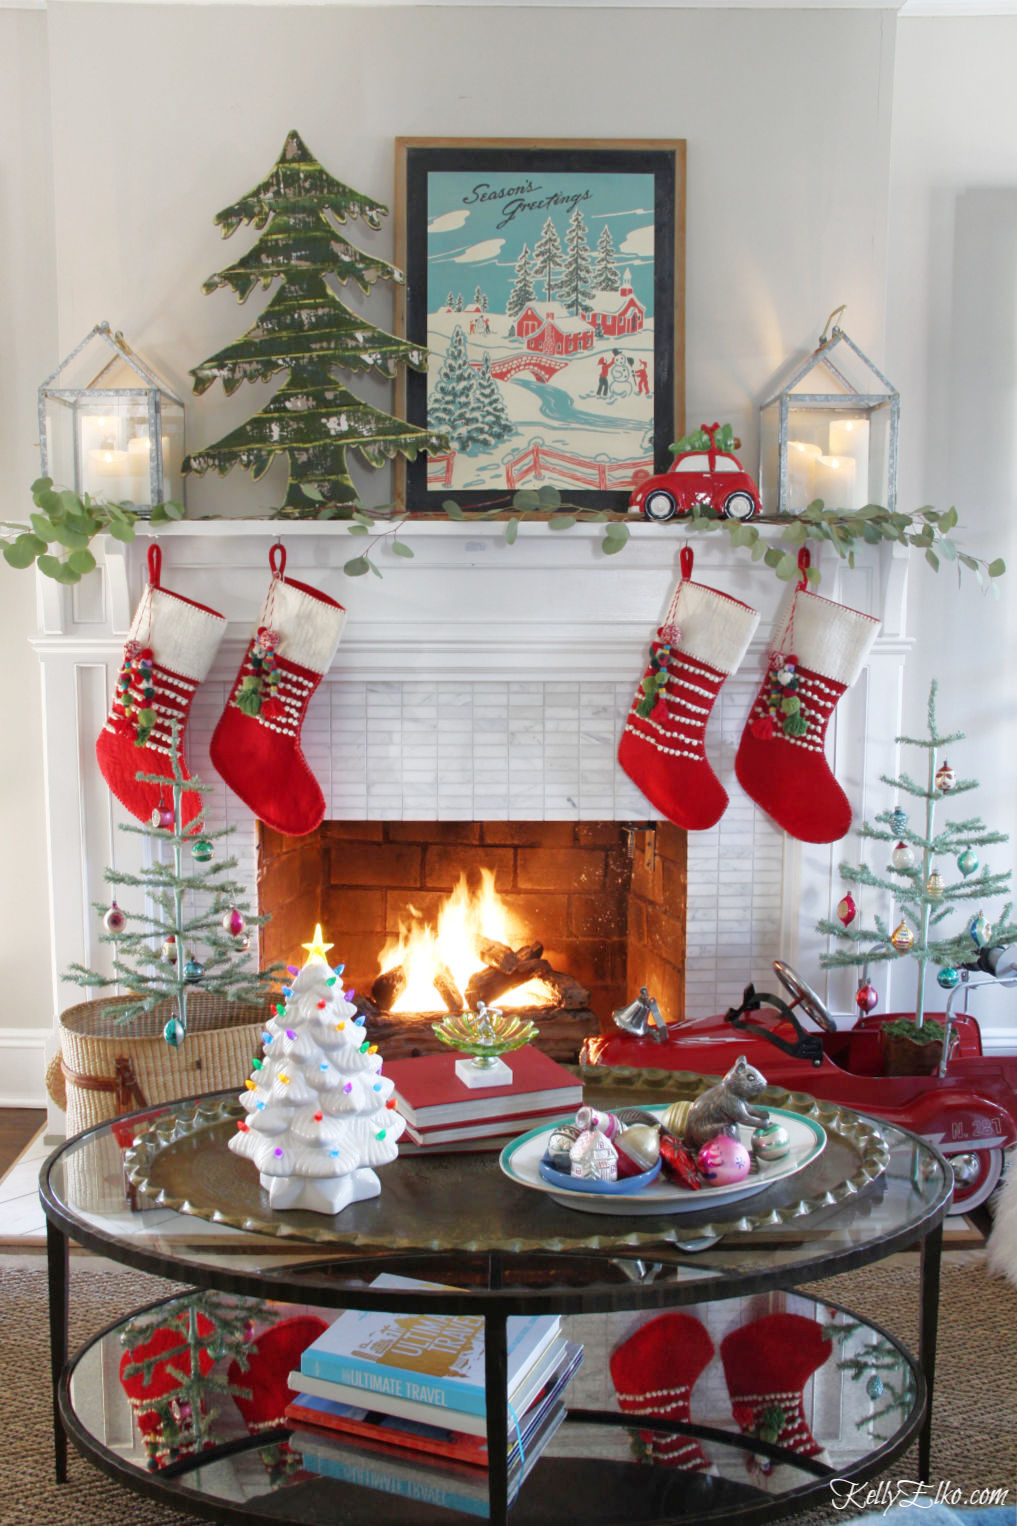 Creative Christmas Home Tour - love this colorful mantel with a mix of vintage and new kellyelko.com #christmas #christmasdecor #christmasdecorating #christmashome #christmastour #diychristmas #christmasideas #christmasmantel #christmastree #christmasornaments #vintagechristmas #farmhousechristmas #colorfulchristmas #creativechristmas #kellyelko